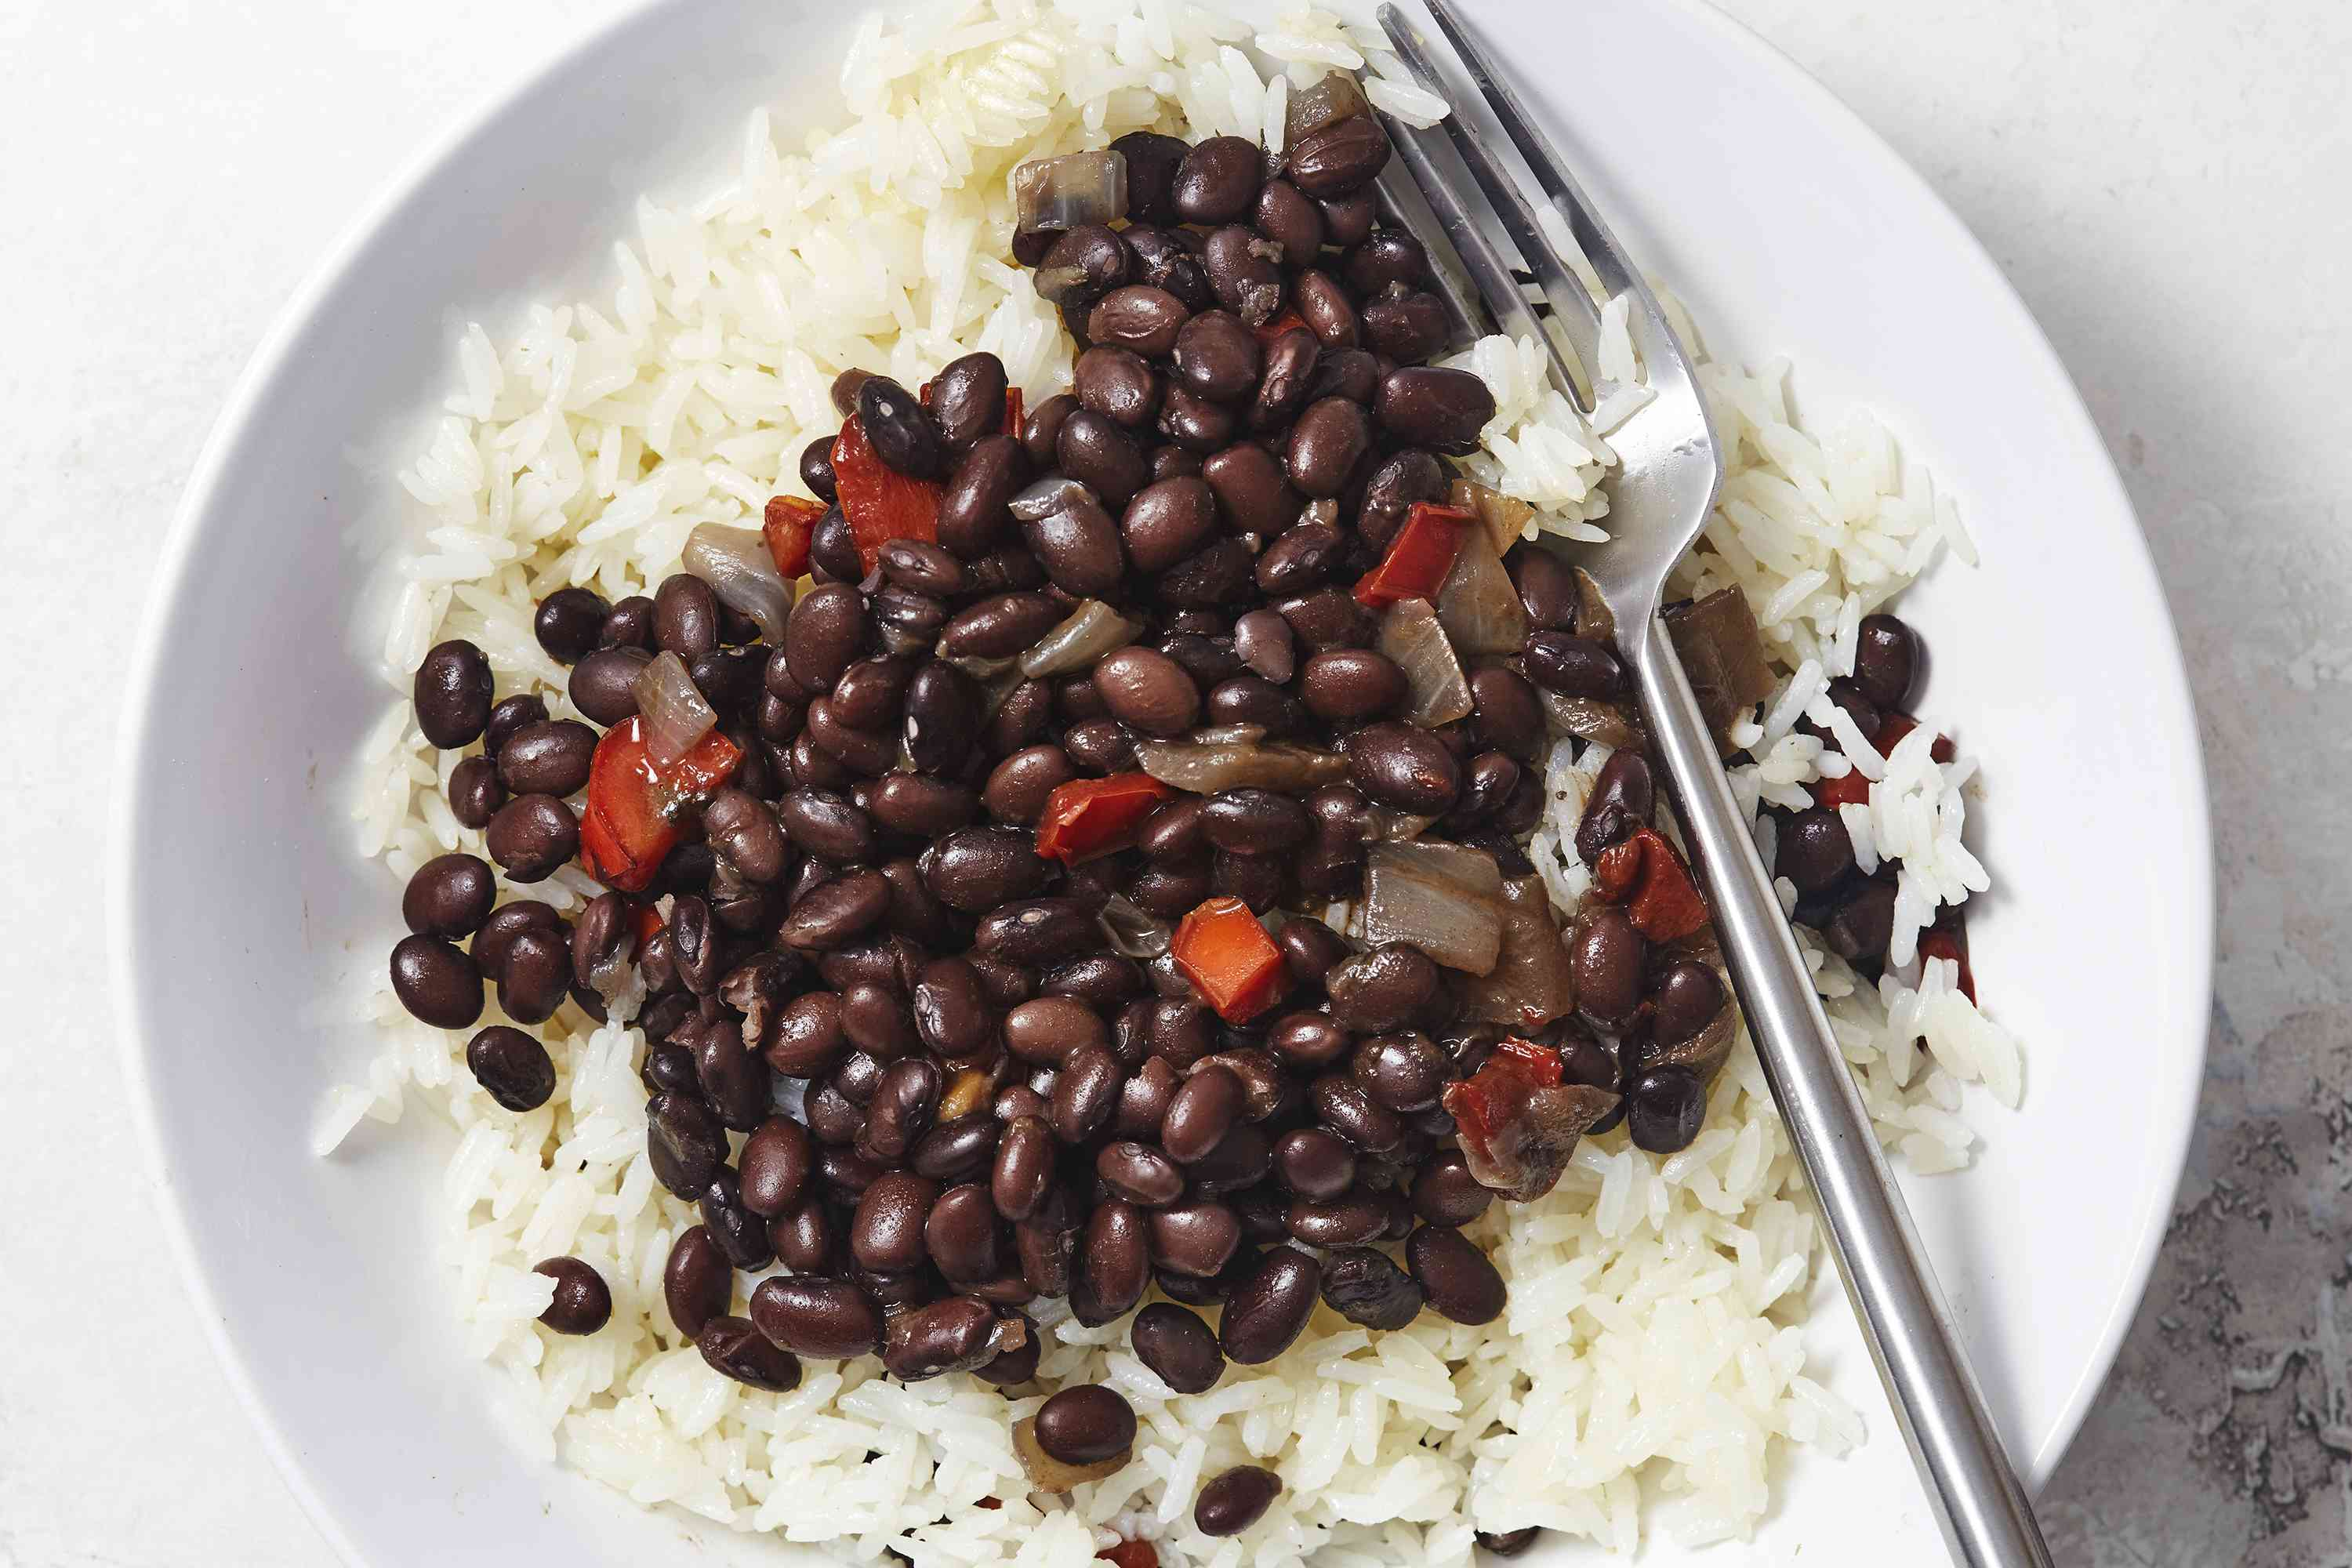 Spanish Beans and Rice (Alubias Con Arroz) on a plate